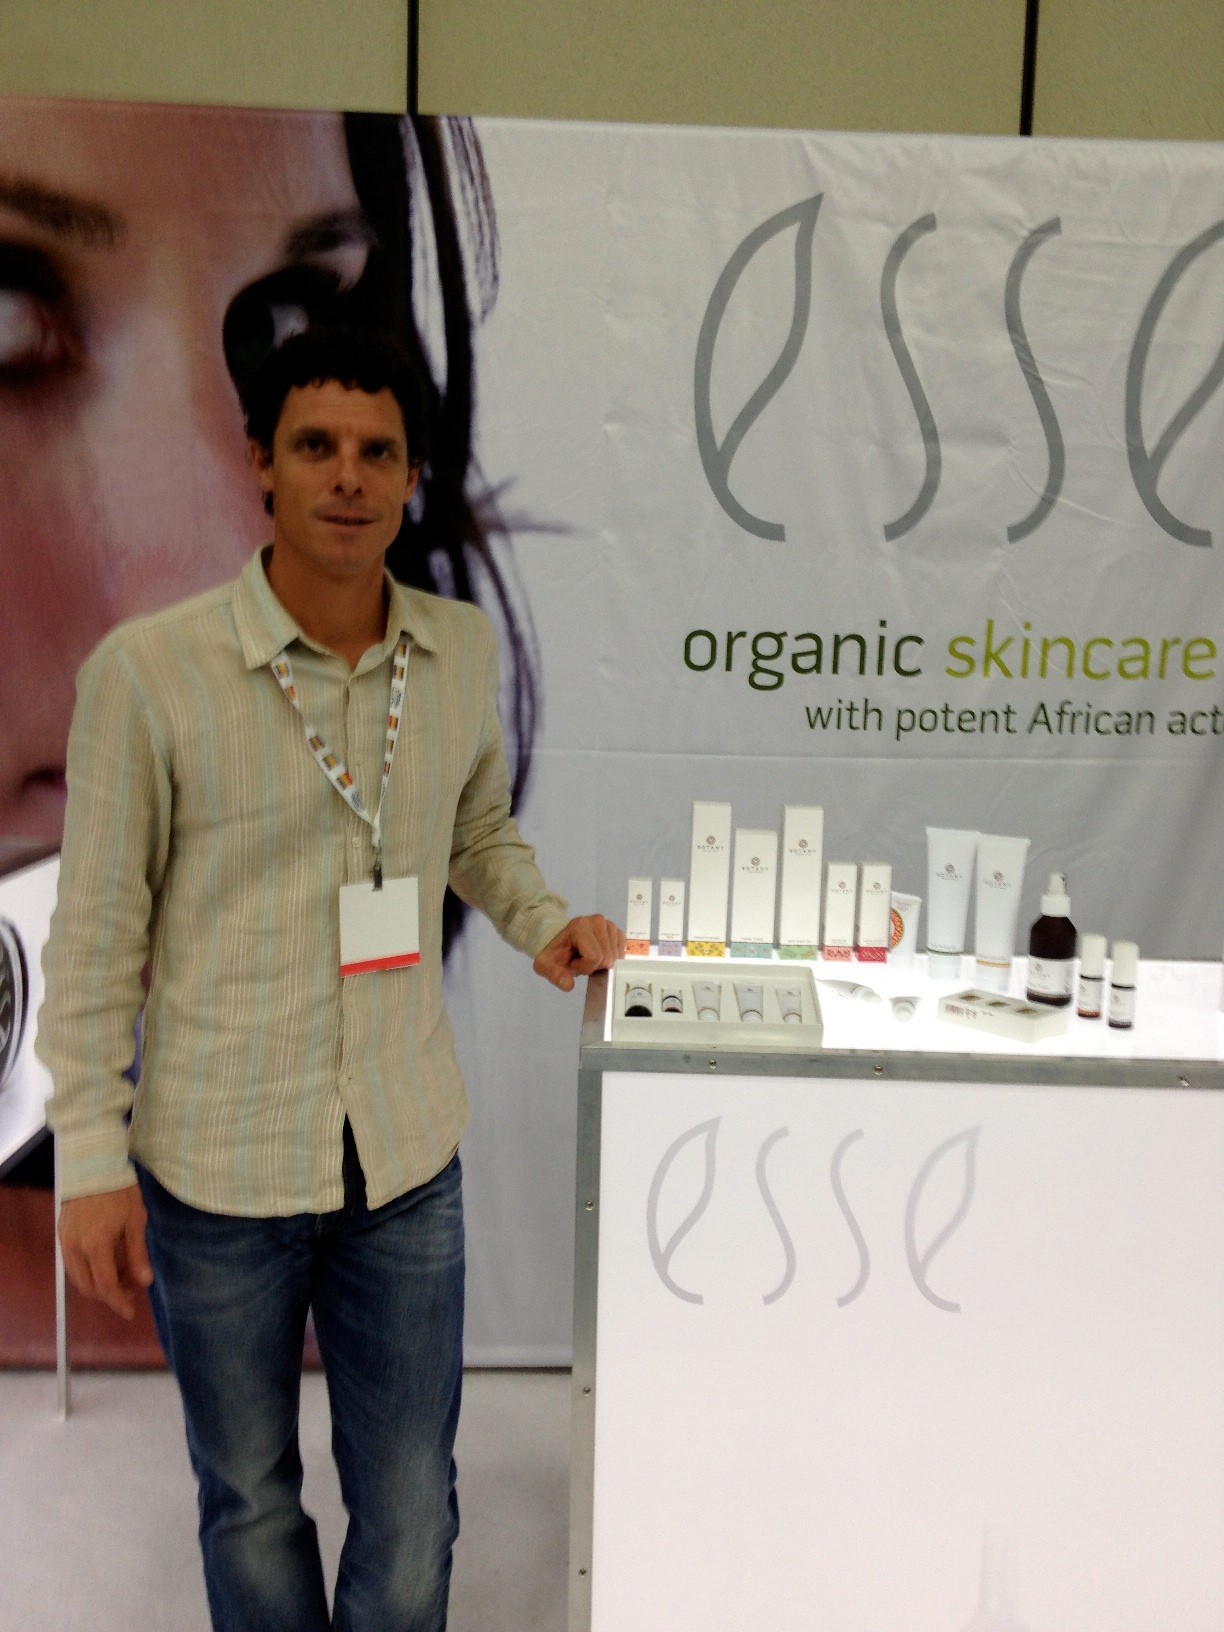 Trevor Steyn, owner and CEO of Esse Organic Skincare